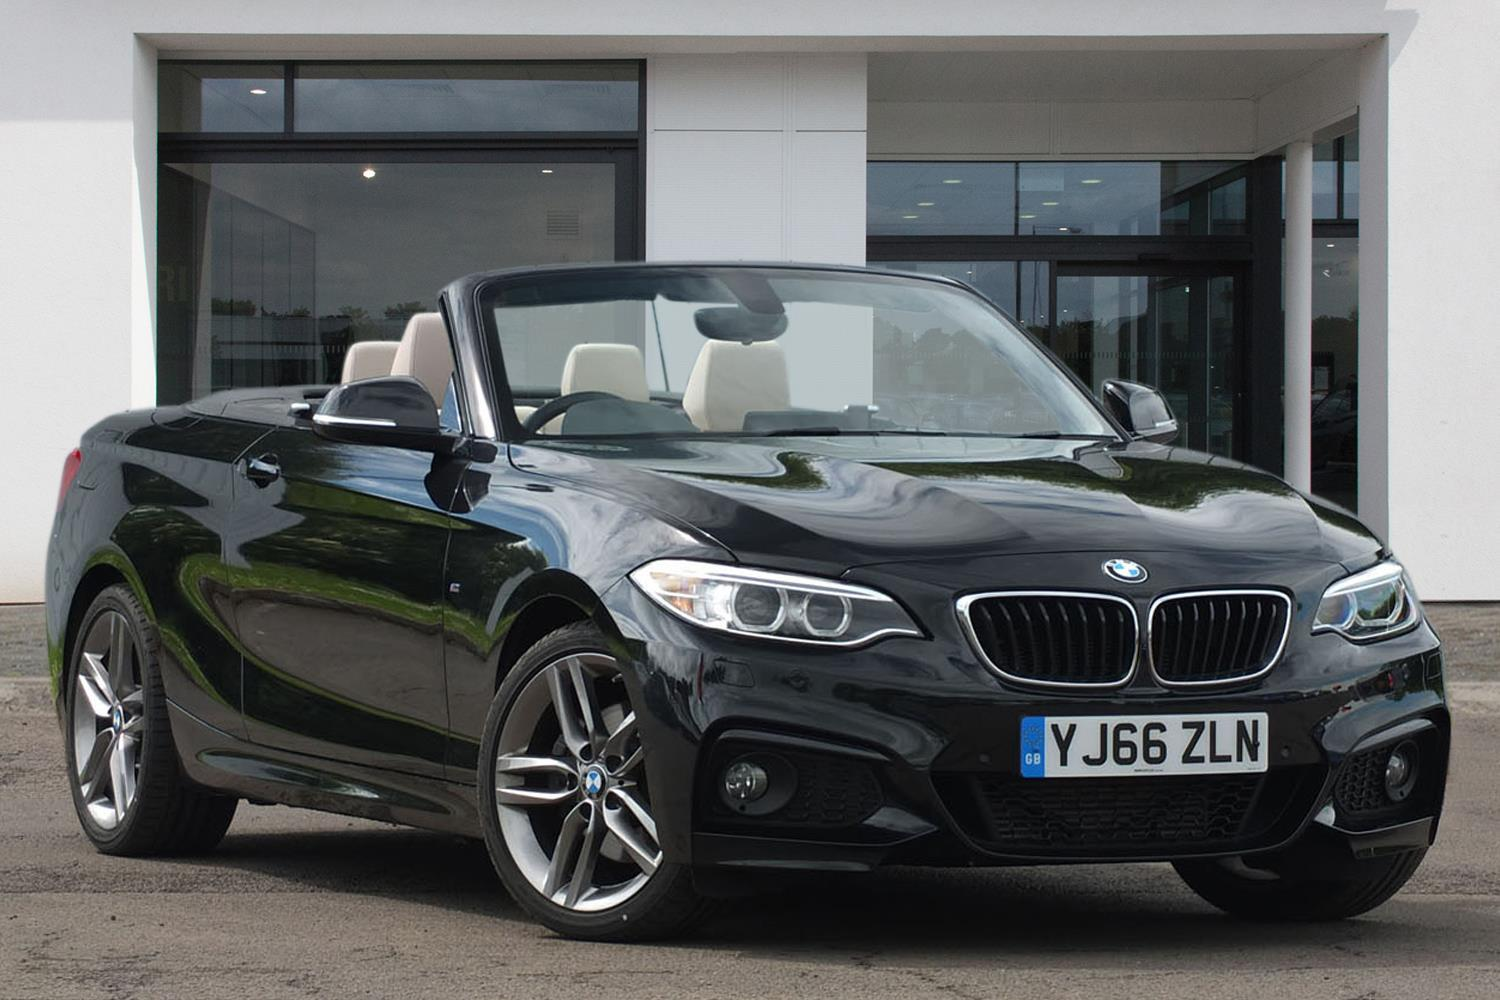 BMW 2 Series Convertible YJ66ZLN - Image 3